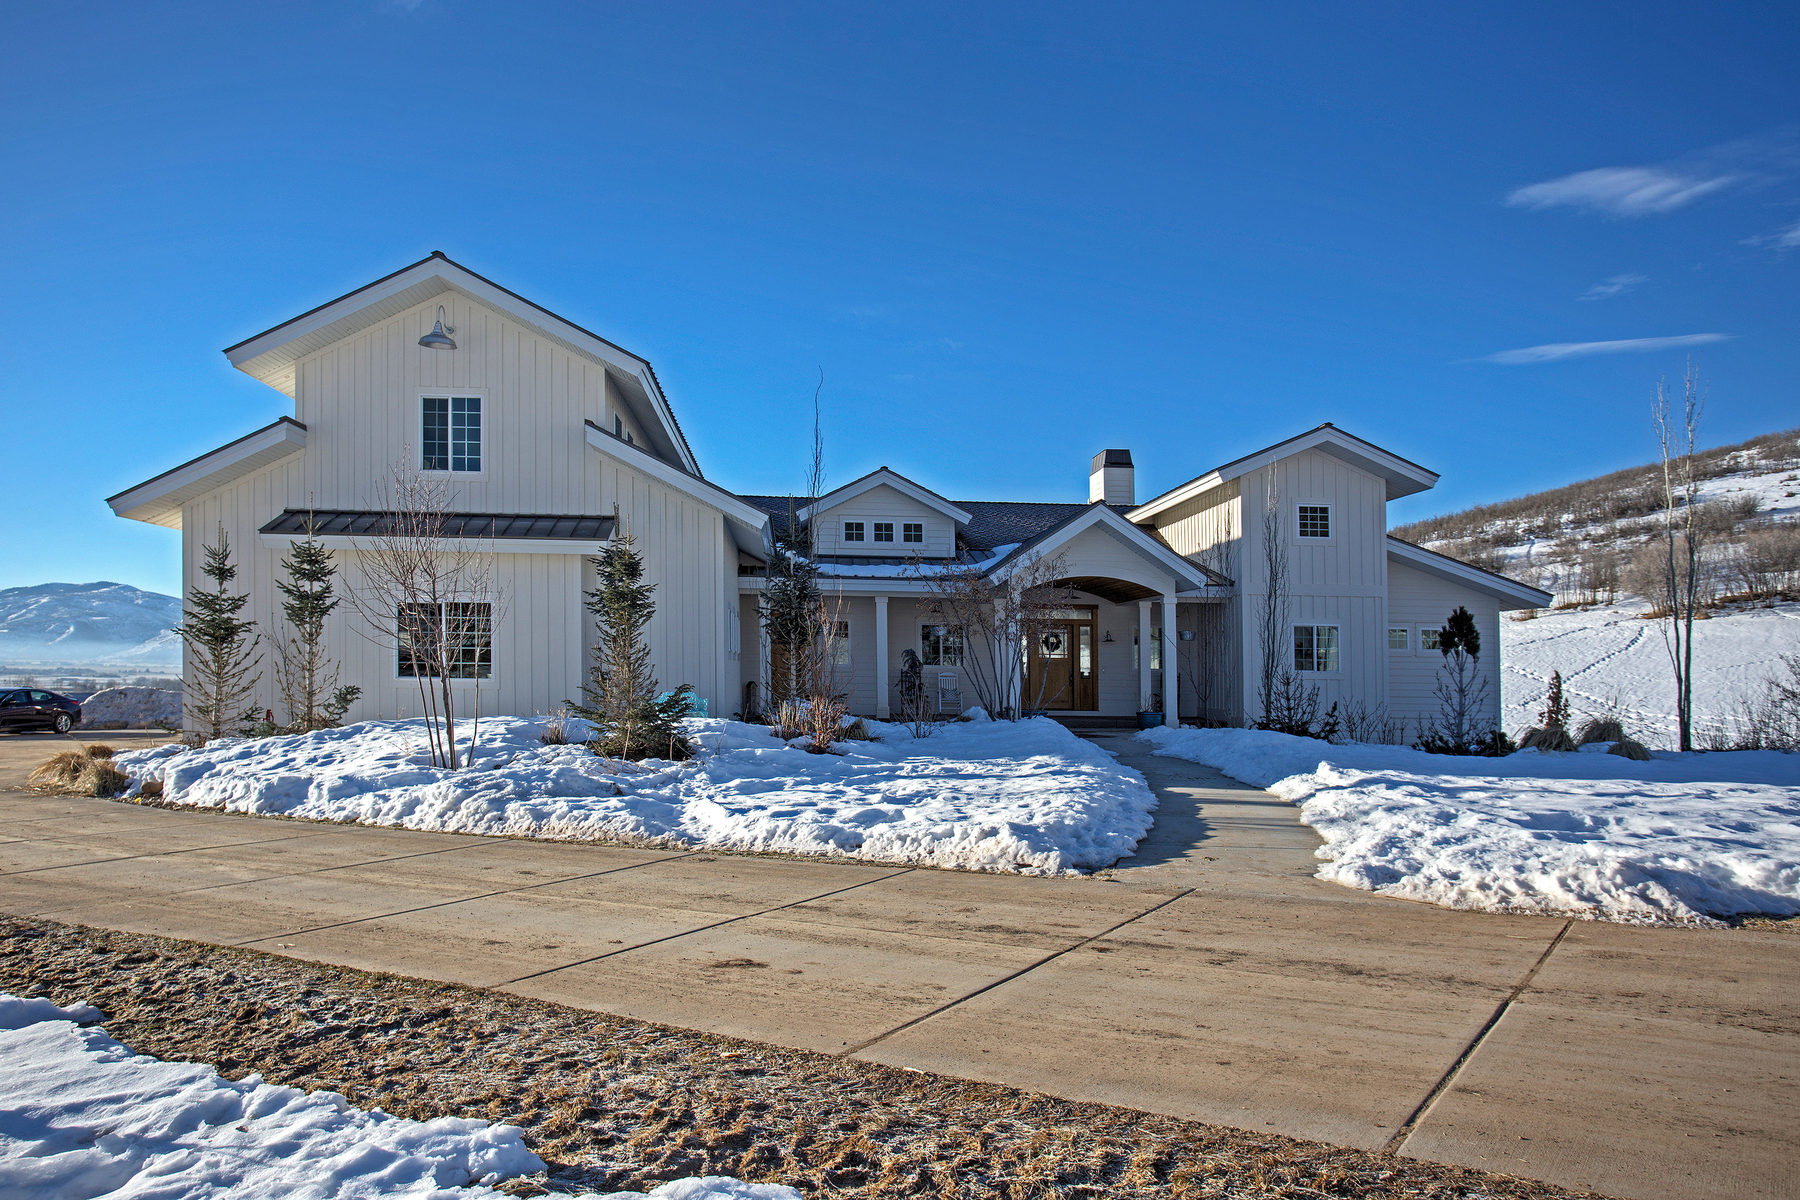 Casa Unifamiliar por un Venta en Custom home on 15 acre ranch in Midway 566 E Saddle Dr Midway, Utah 84049 Estados Unidos